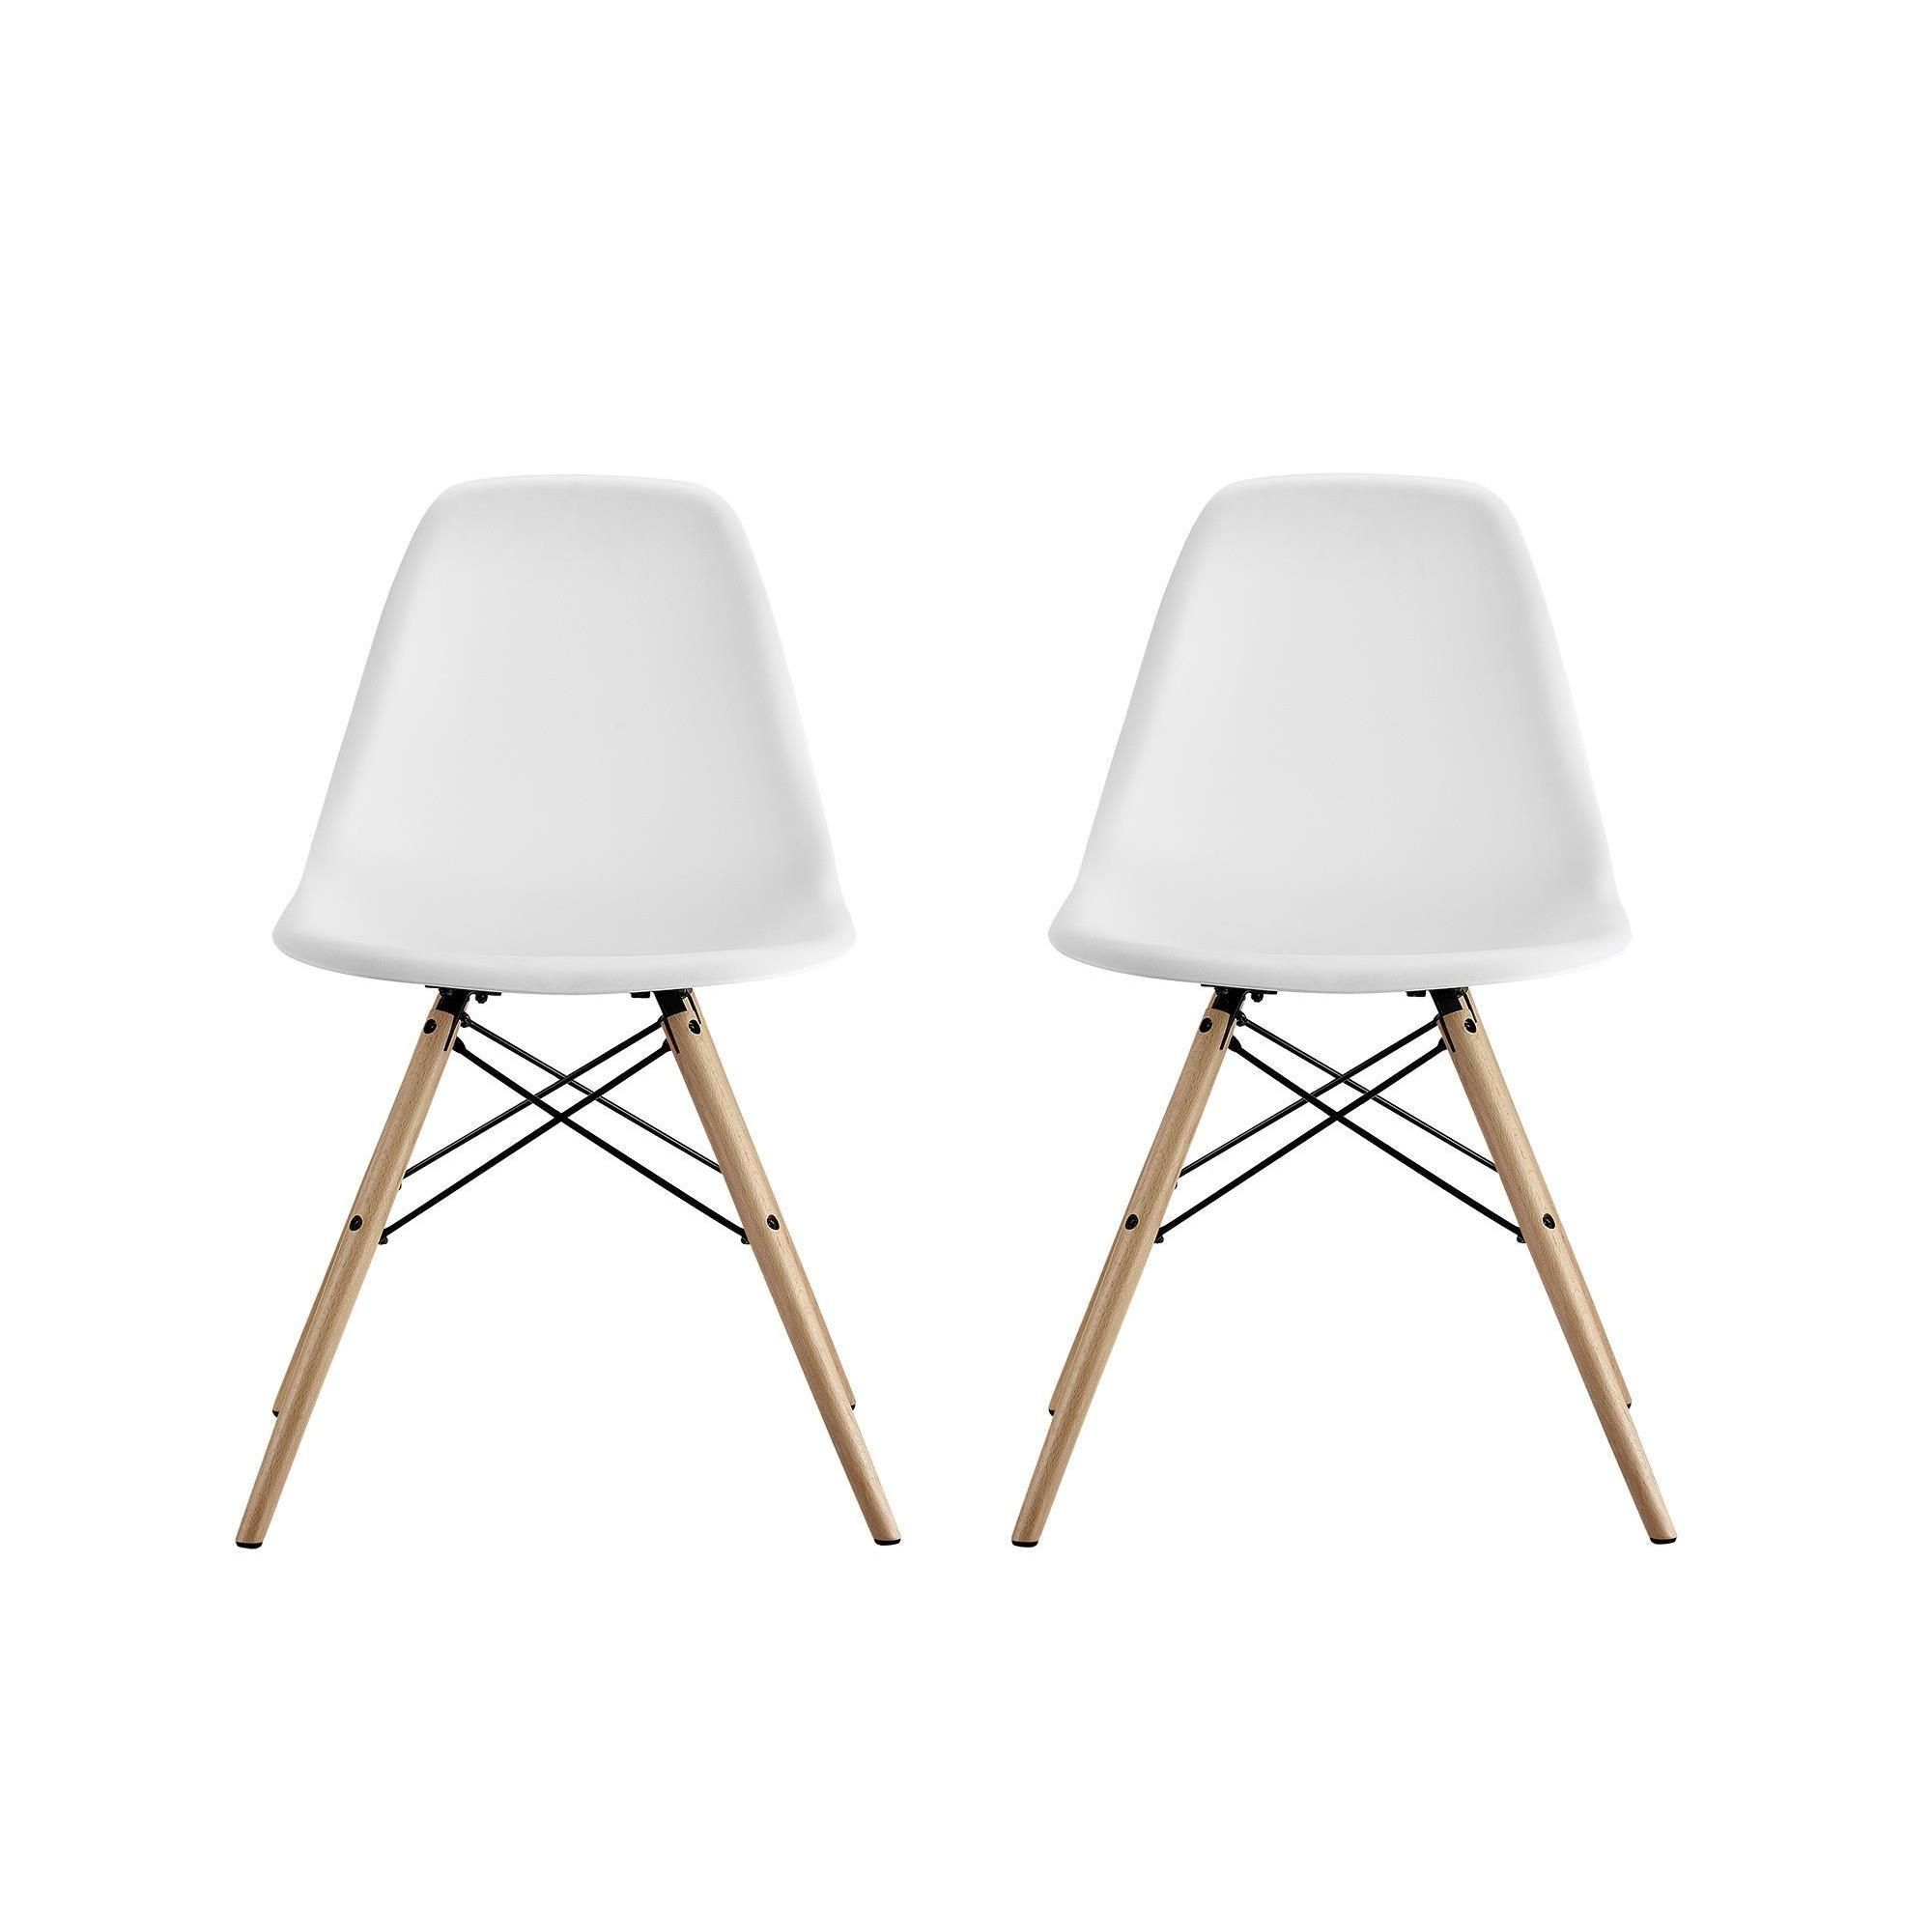 Dhp Mid Century Modern Molded White Chair With Wood Leg Set Of 2